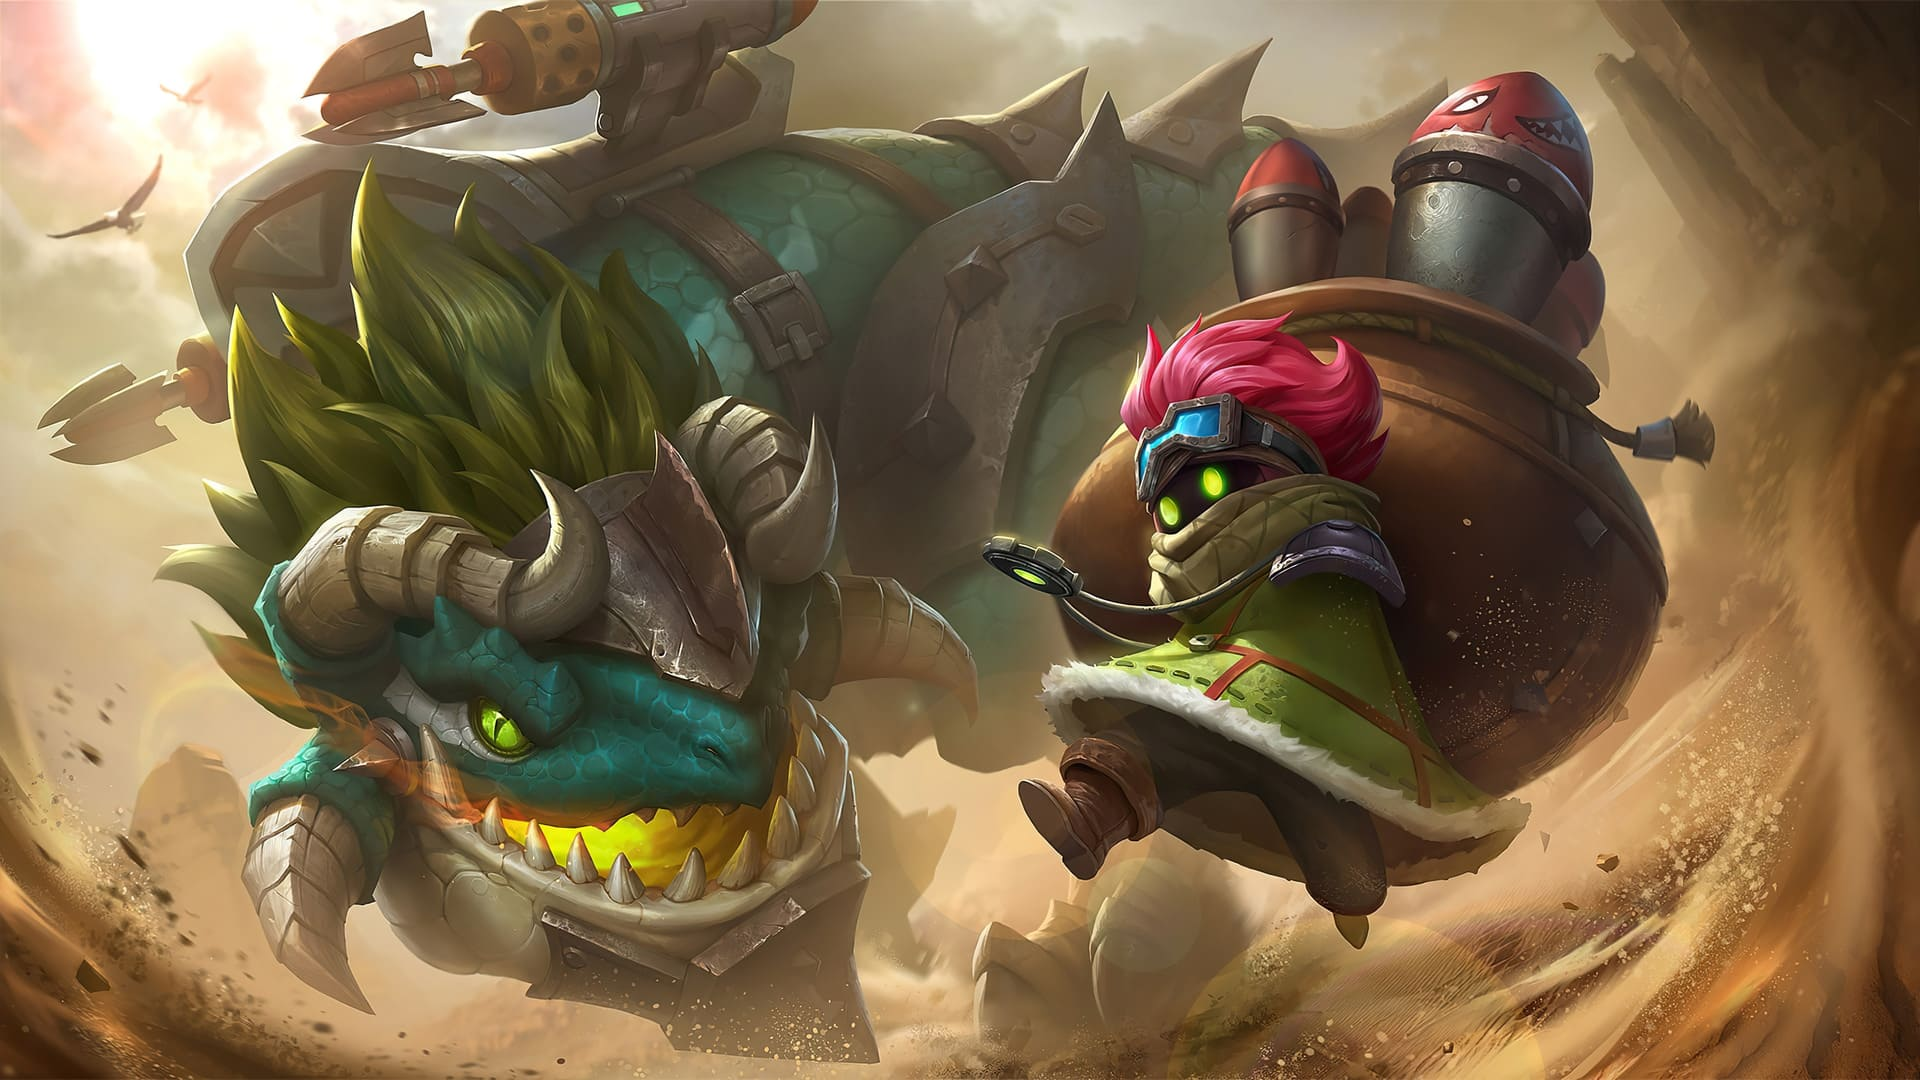 gambar barats armored lizard mobile legends hd for PC